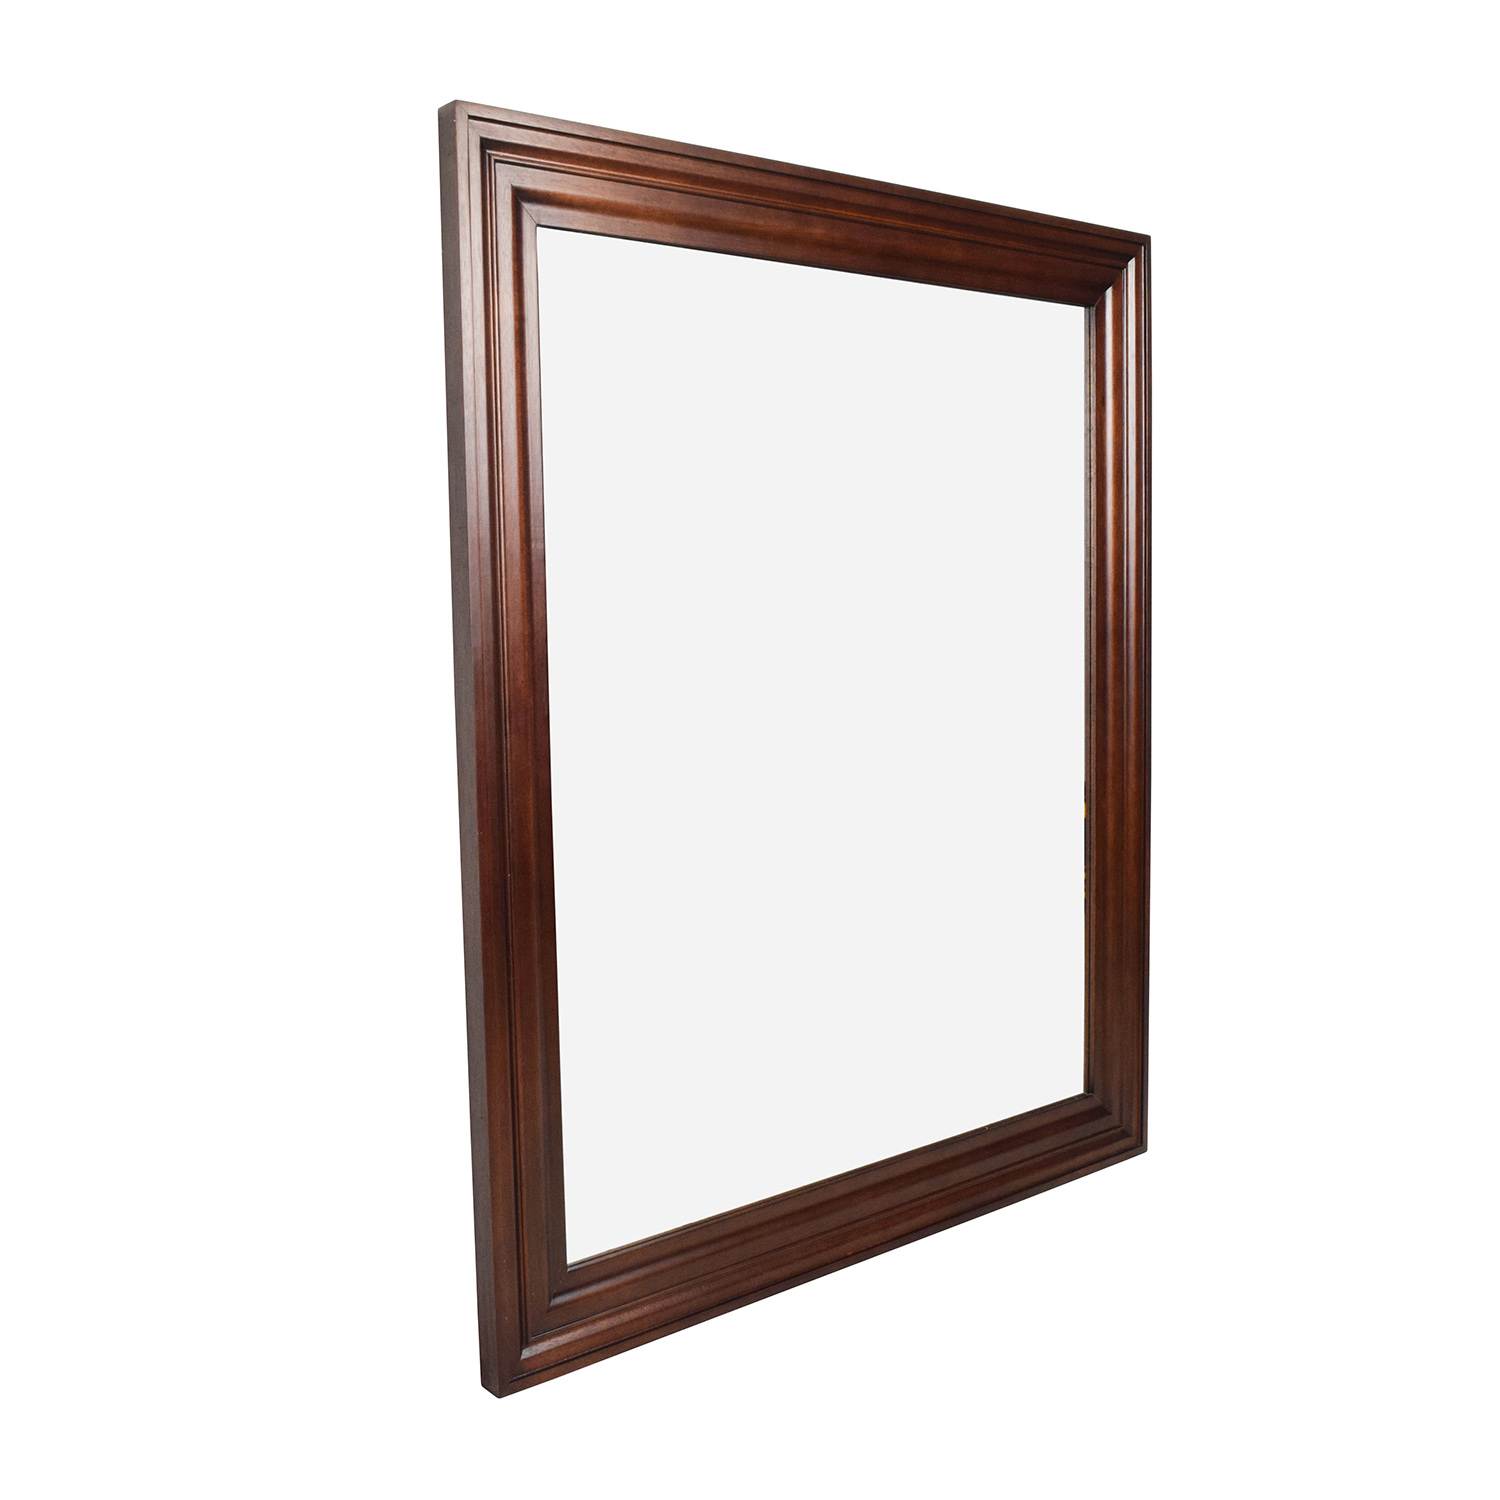 Large Wood Framed Mirror / Mirrors